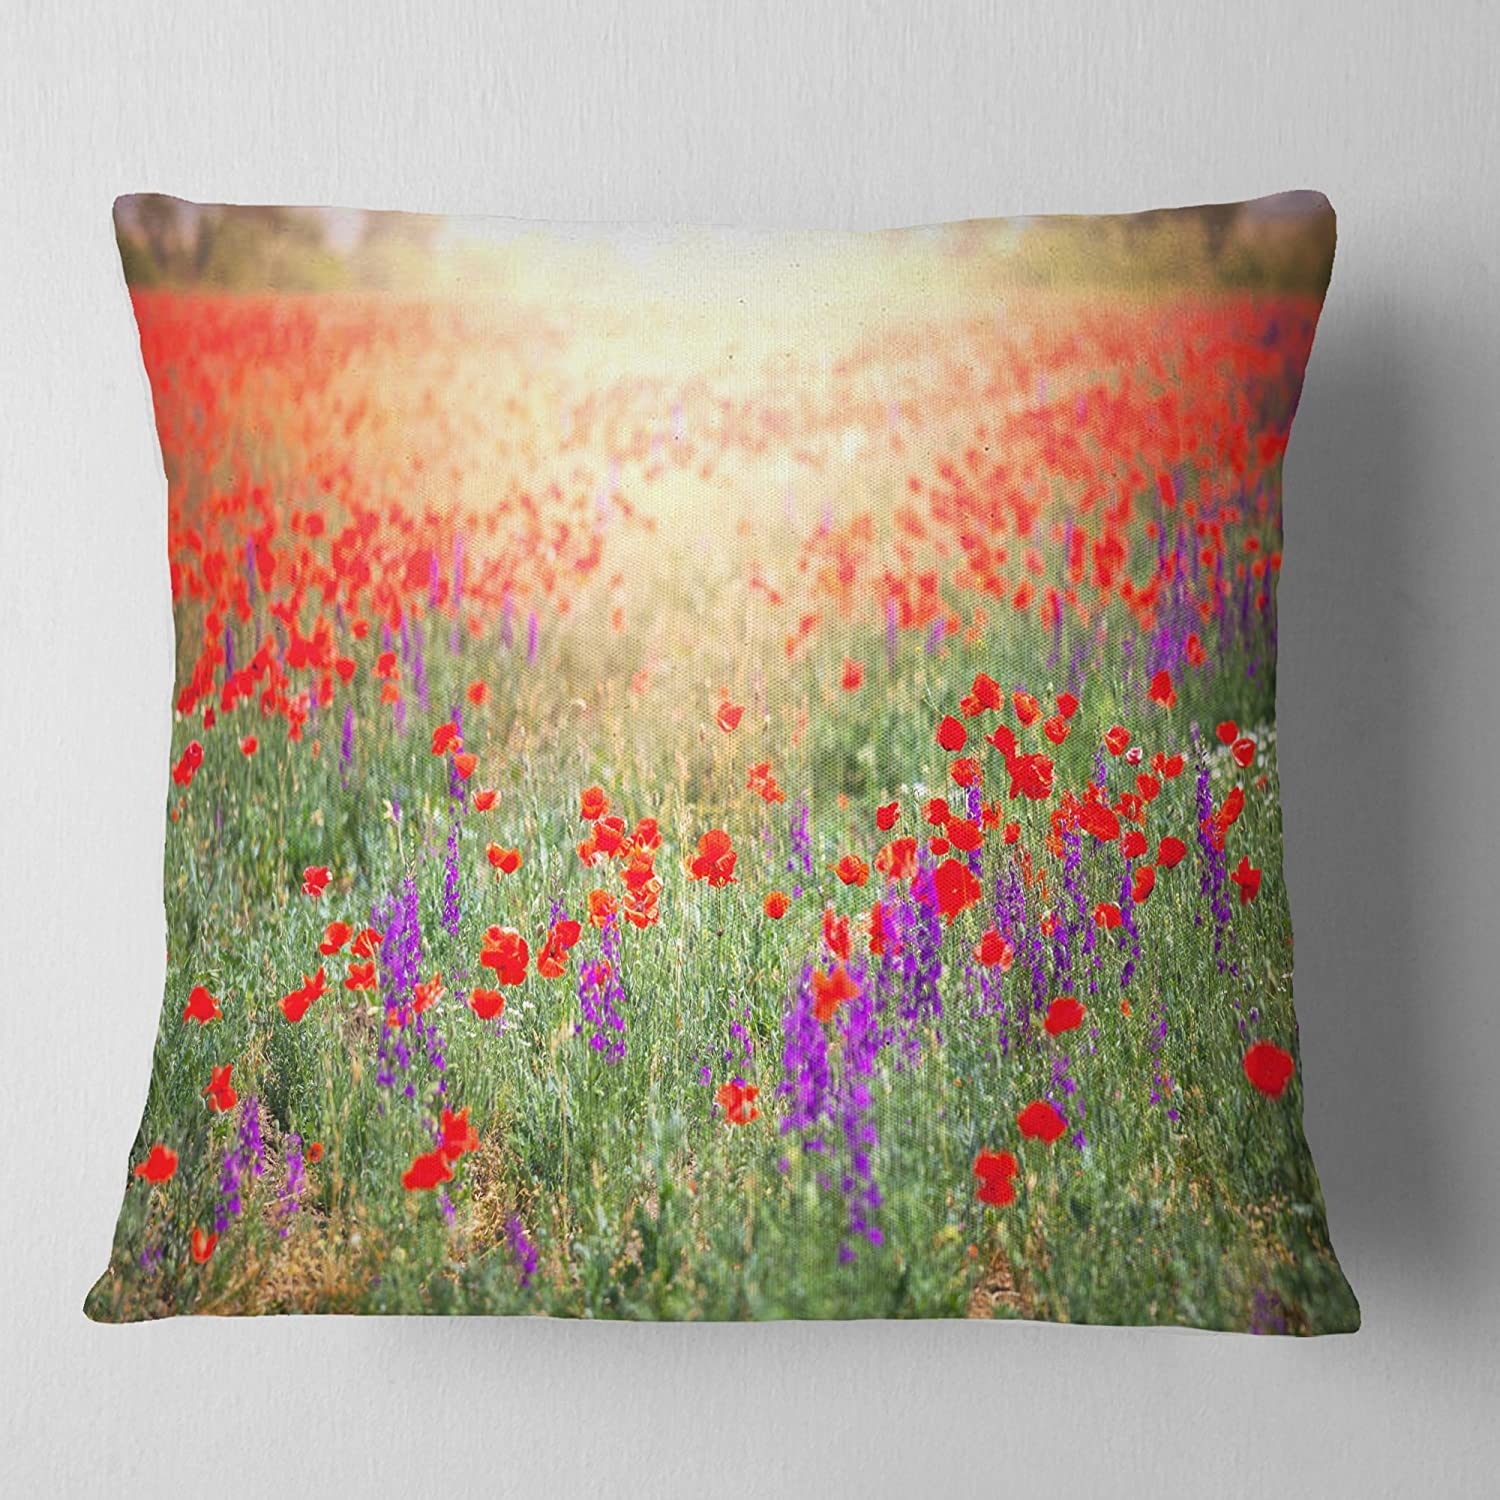 Designart CU12601-18-18 Expansive Poppy Field at Sunset' Floral Cushion Cover for Living Room, Sofa Throw Pillow 18 in. x 18 in. in, Insert Printed On Both Side